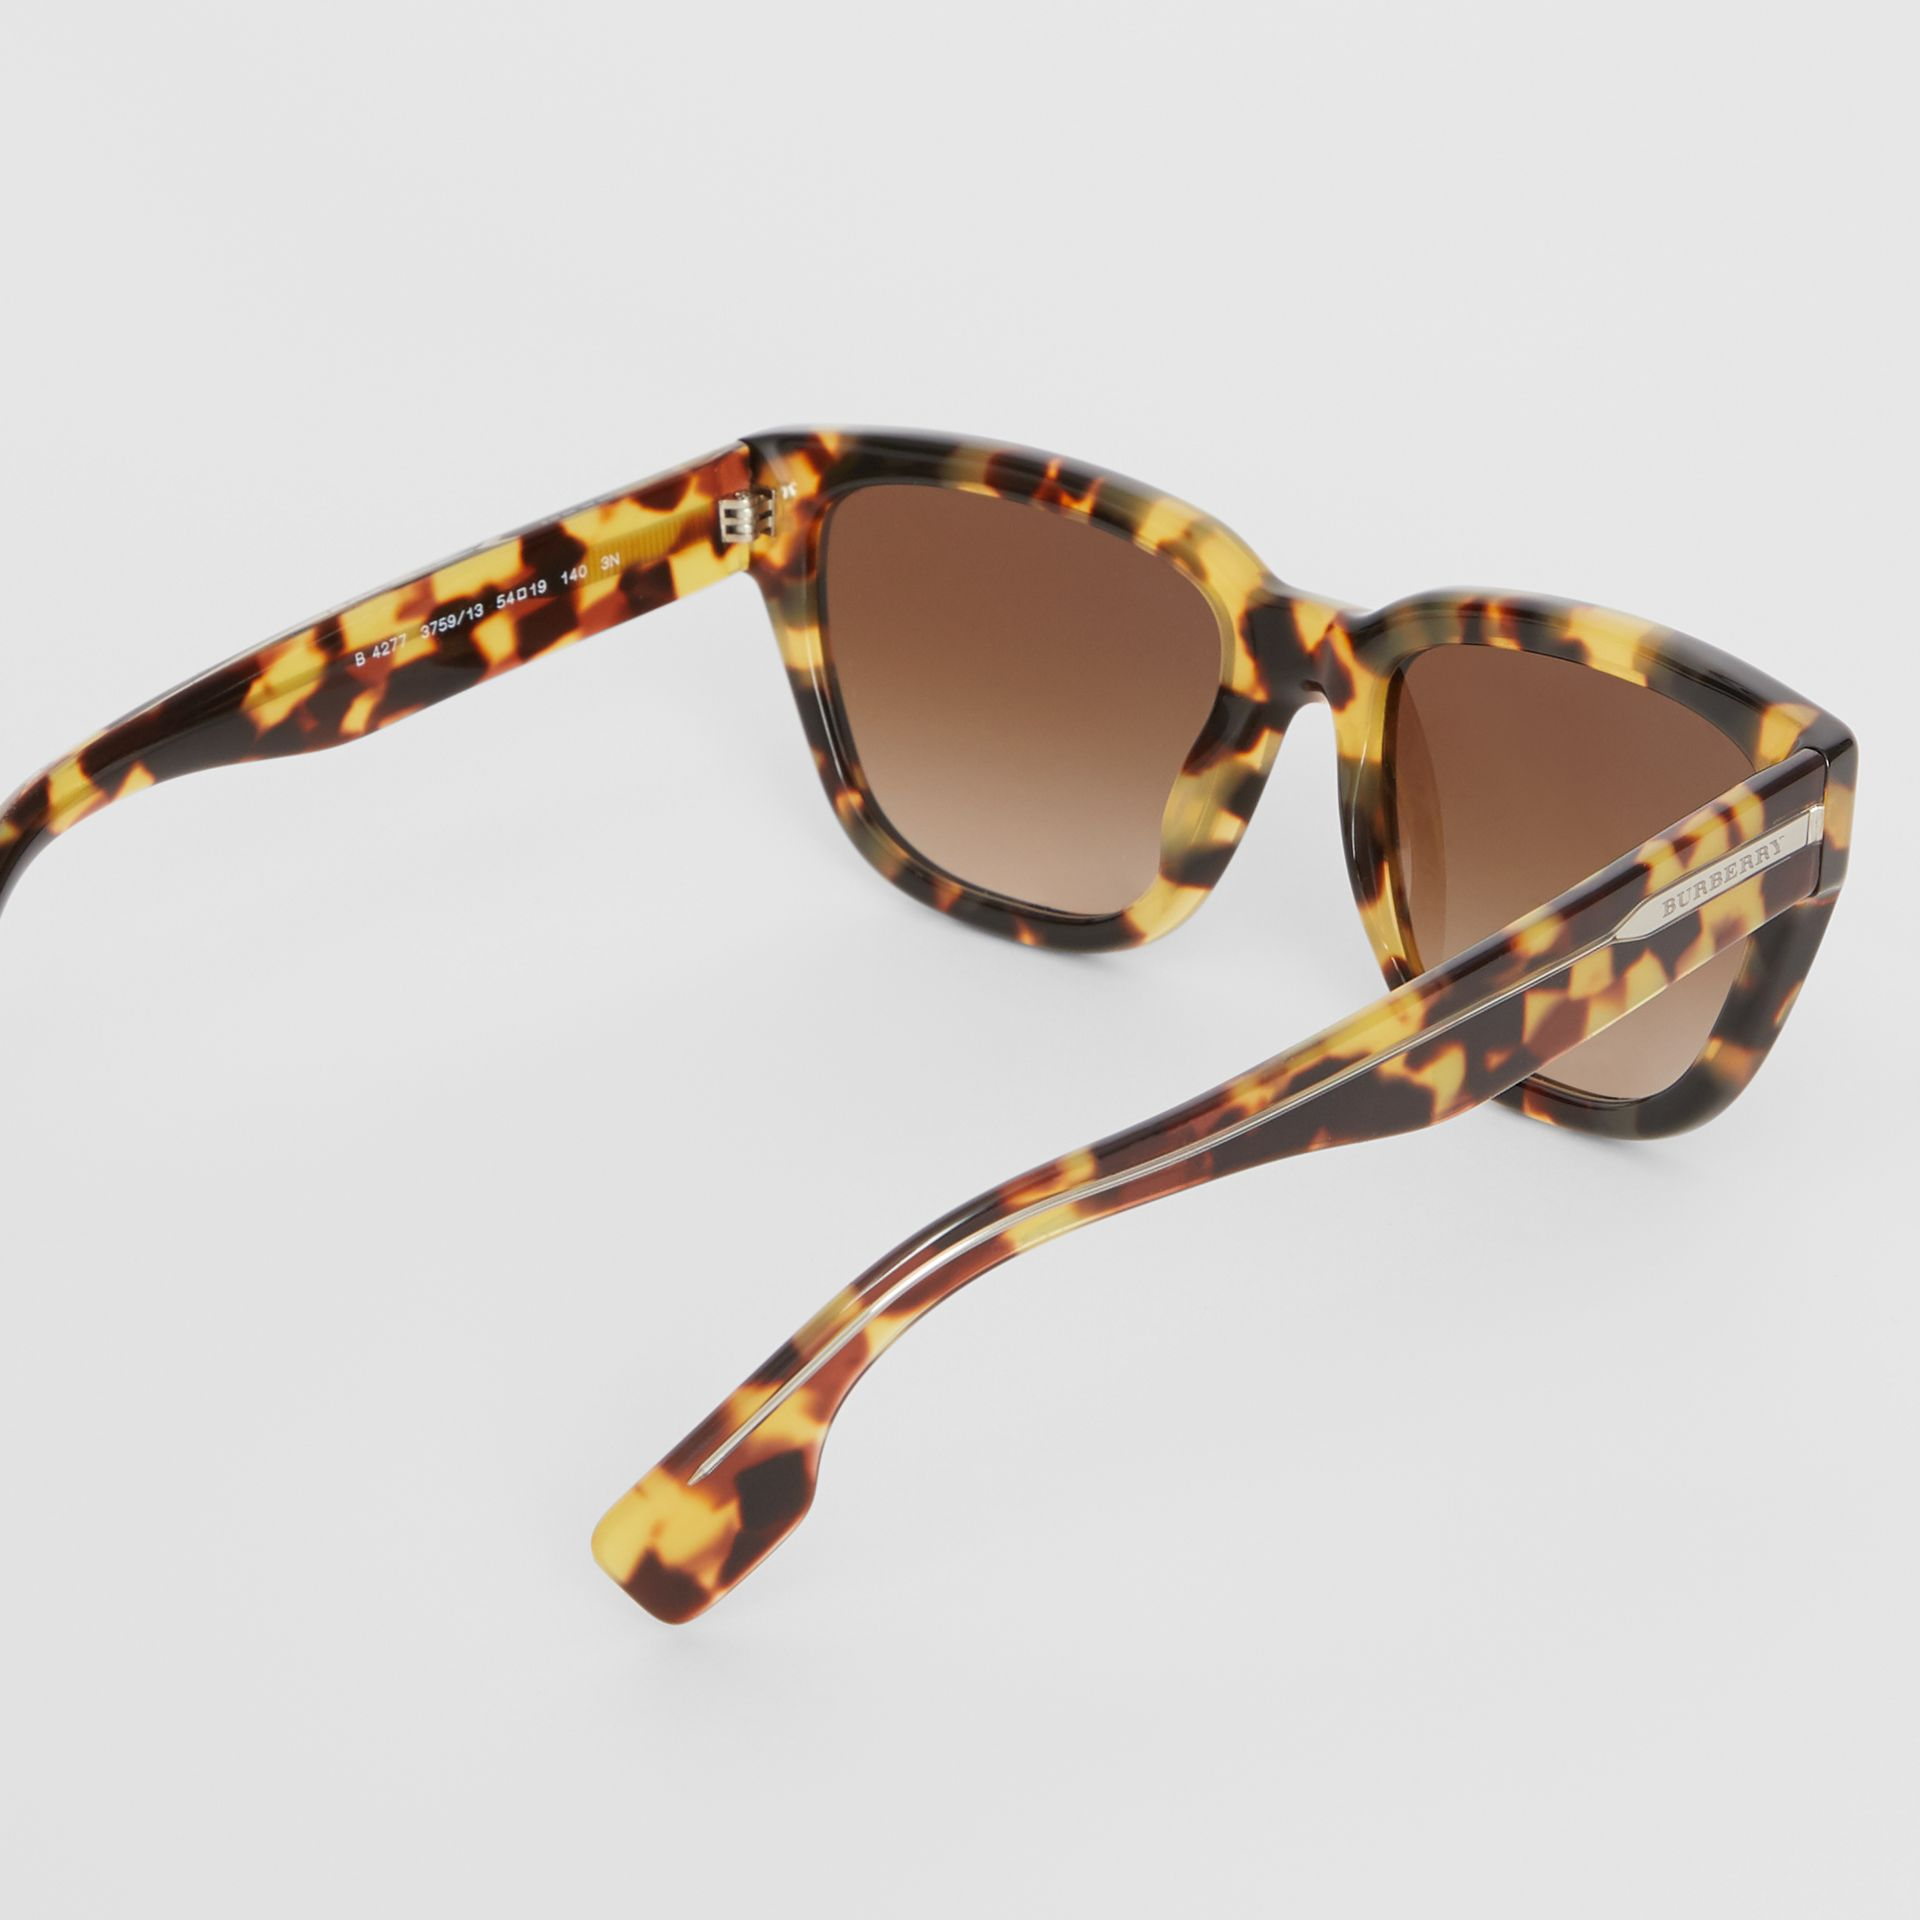 Square Frame Sunglasses in Tortoiseshell - Women | Burberry Hong Kong S.A.R - gallery image 4